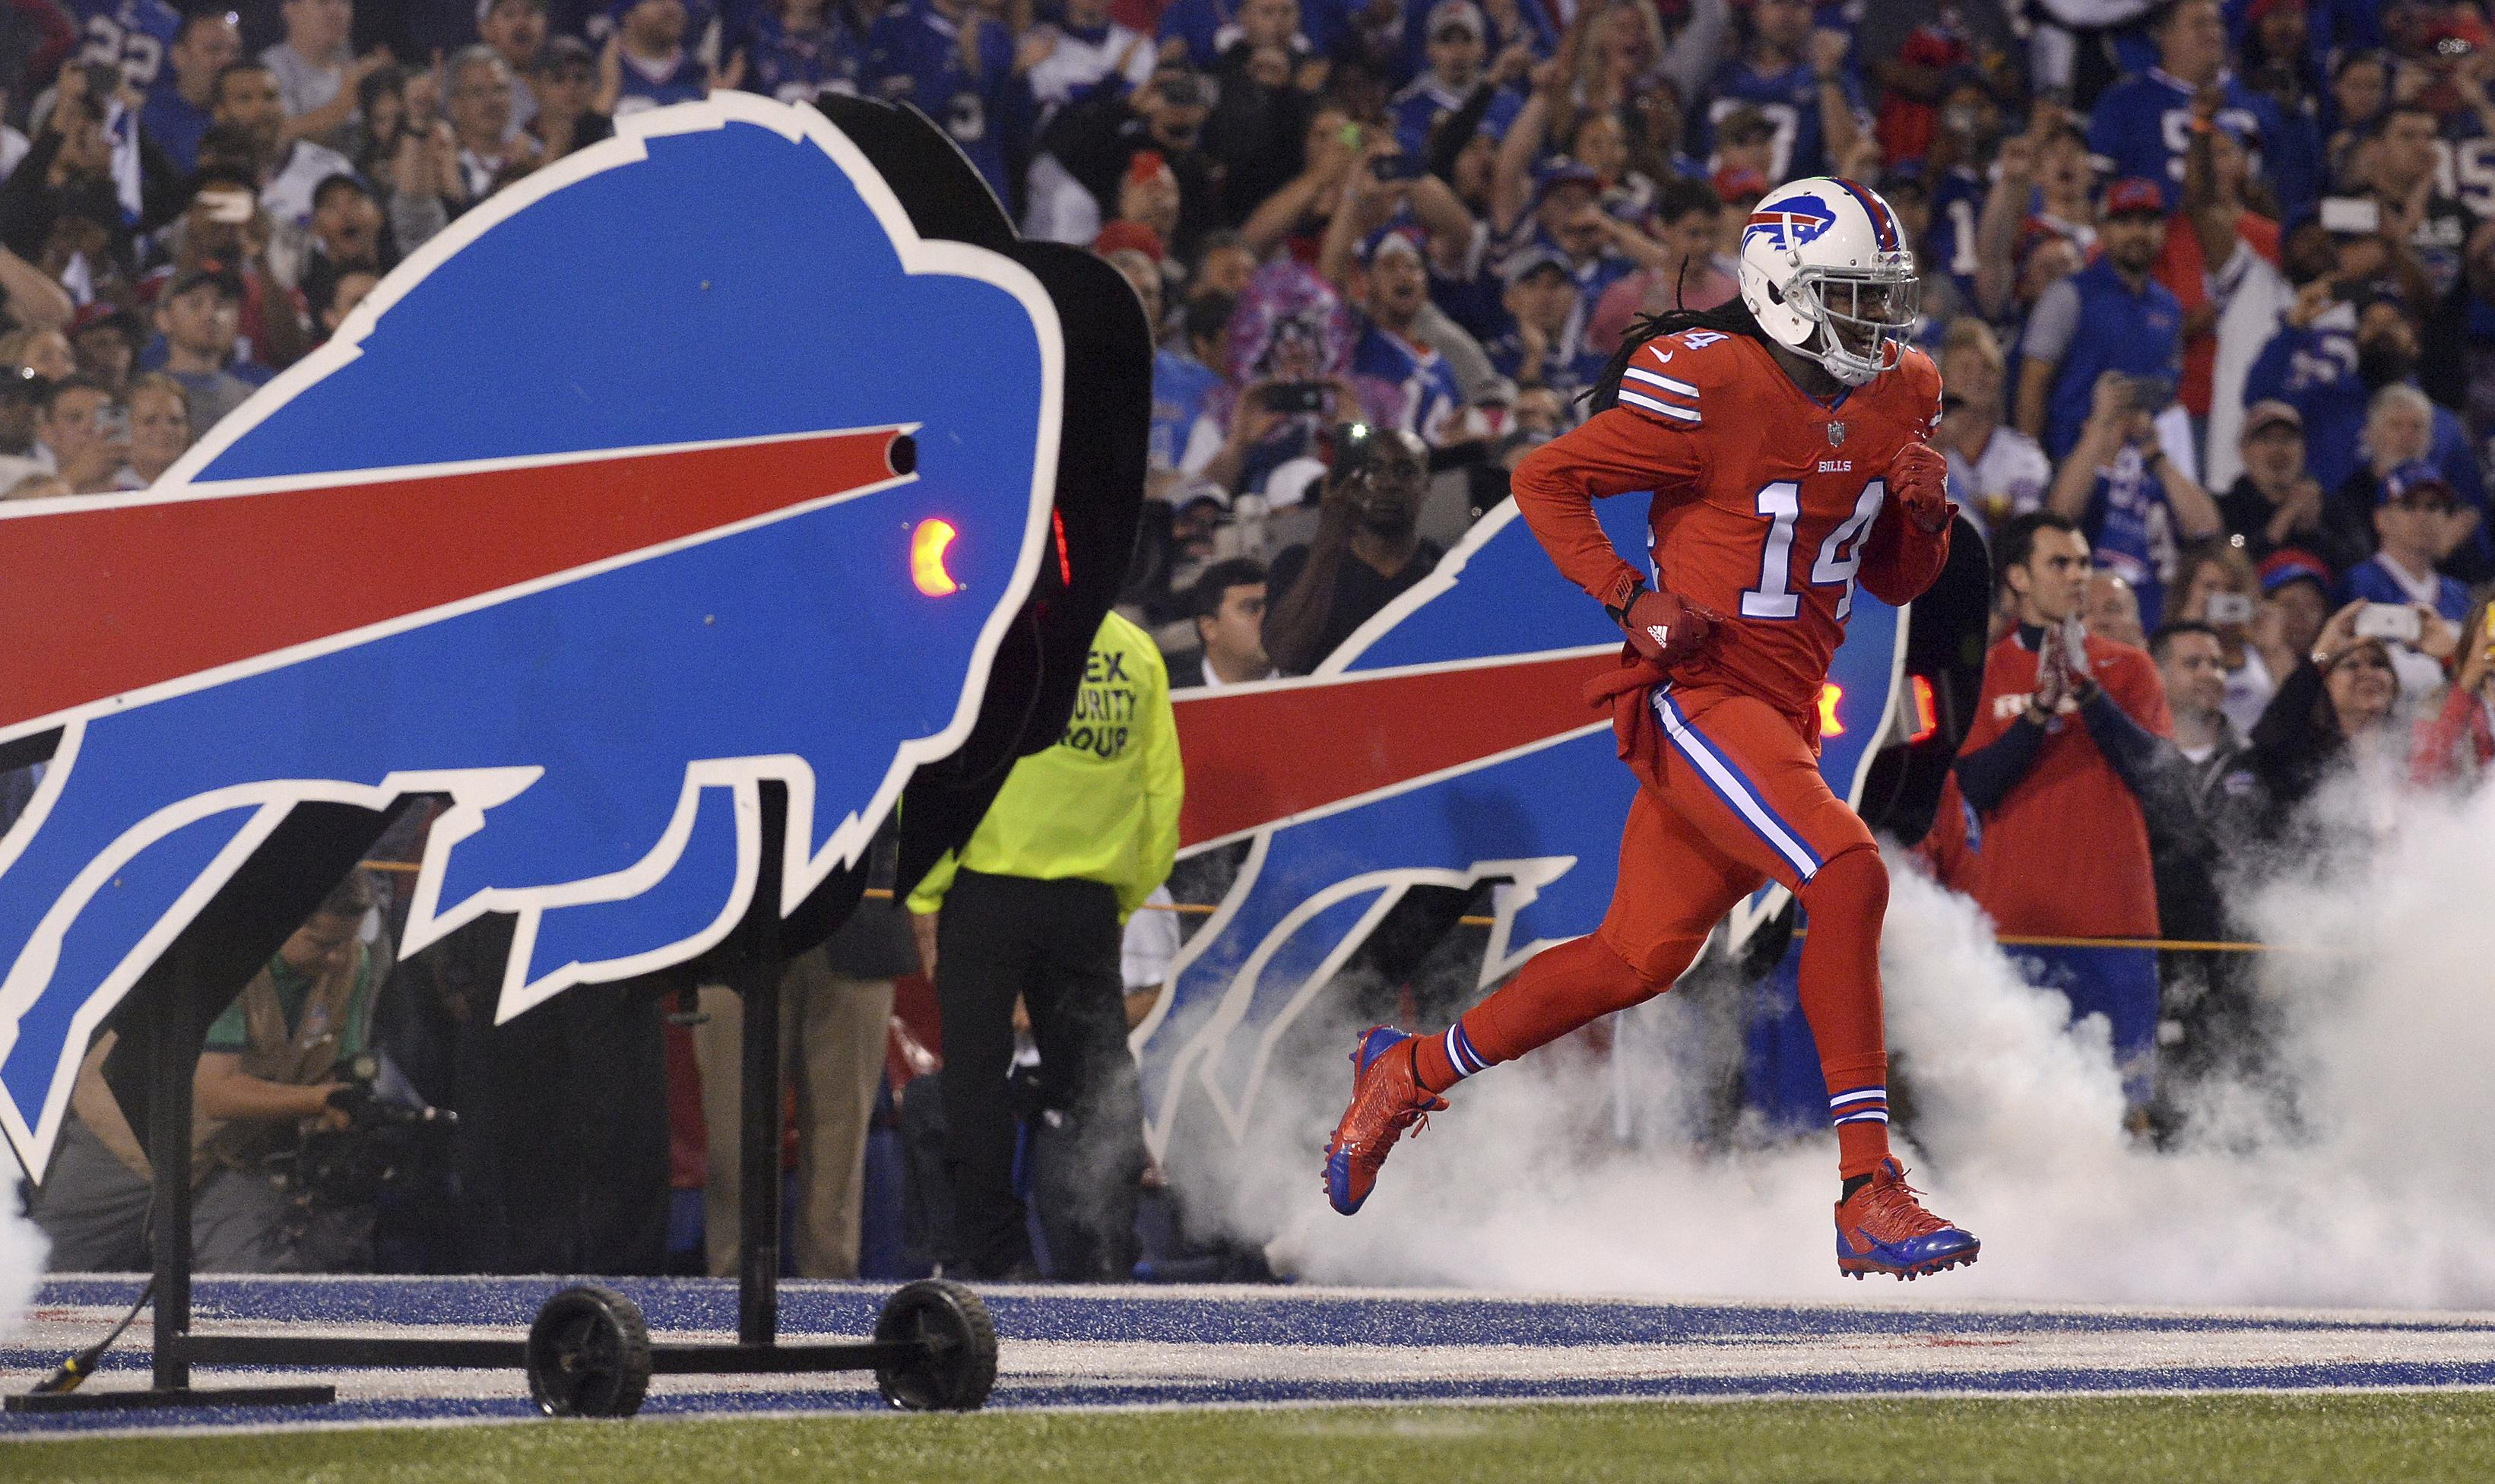 Watkins held out of practice due to sore foot; Bills sign TE/QB